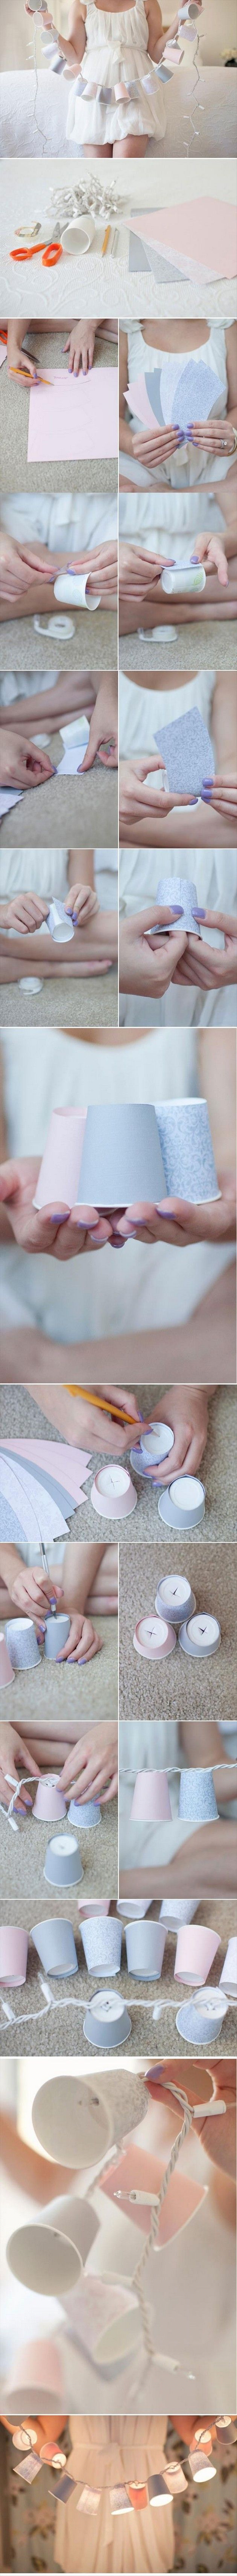 Craft & DIY Ideas- paper-cup string lamps